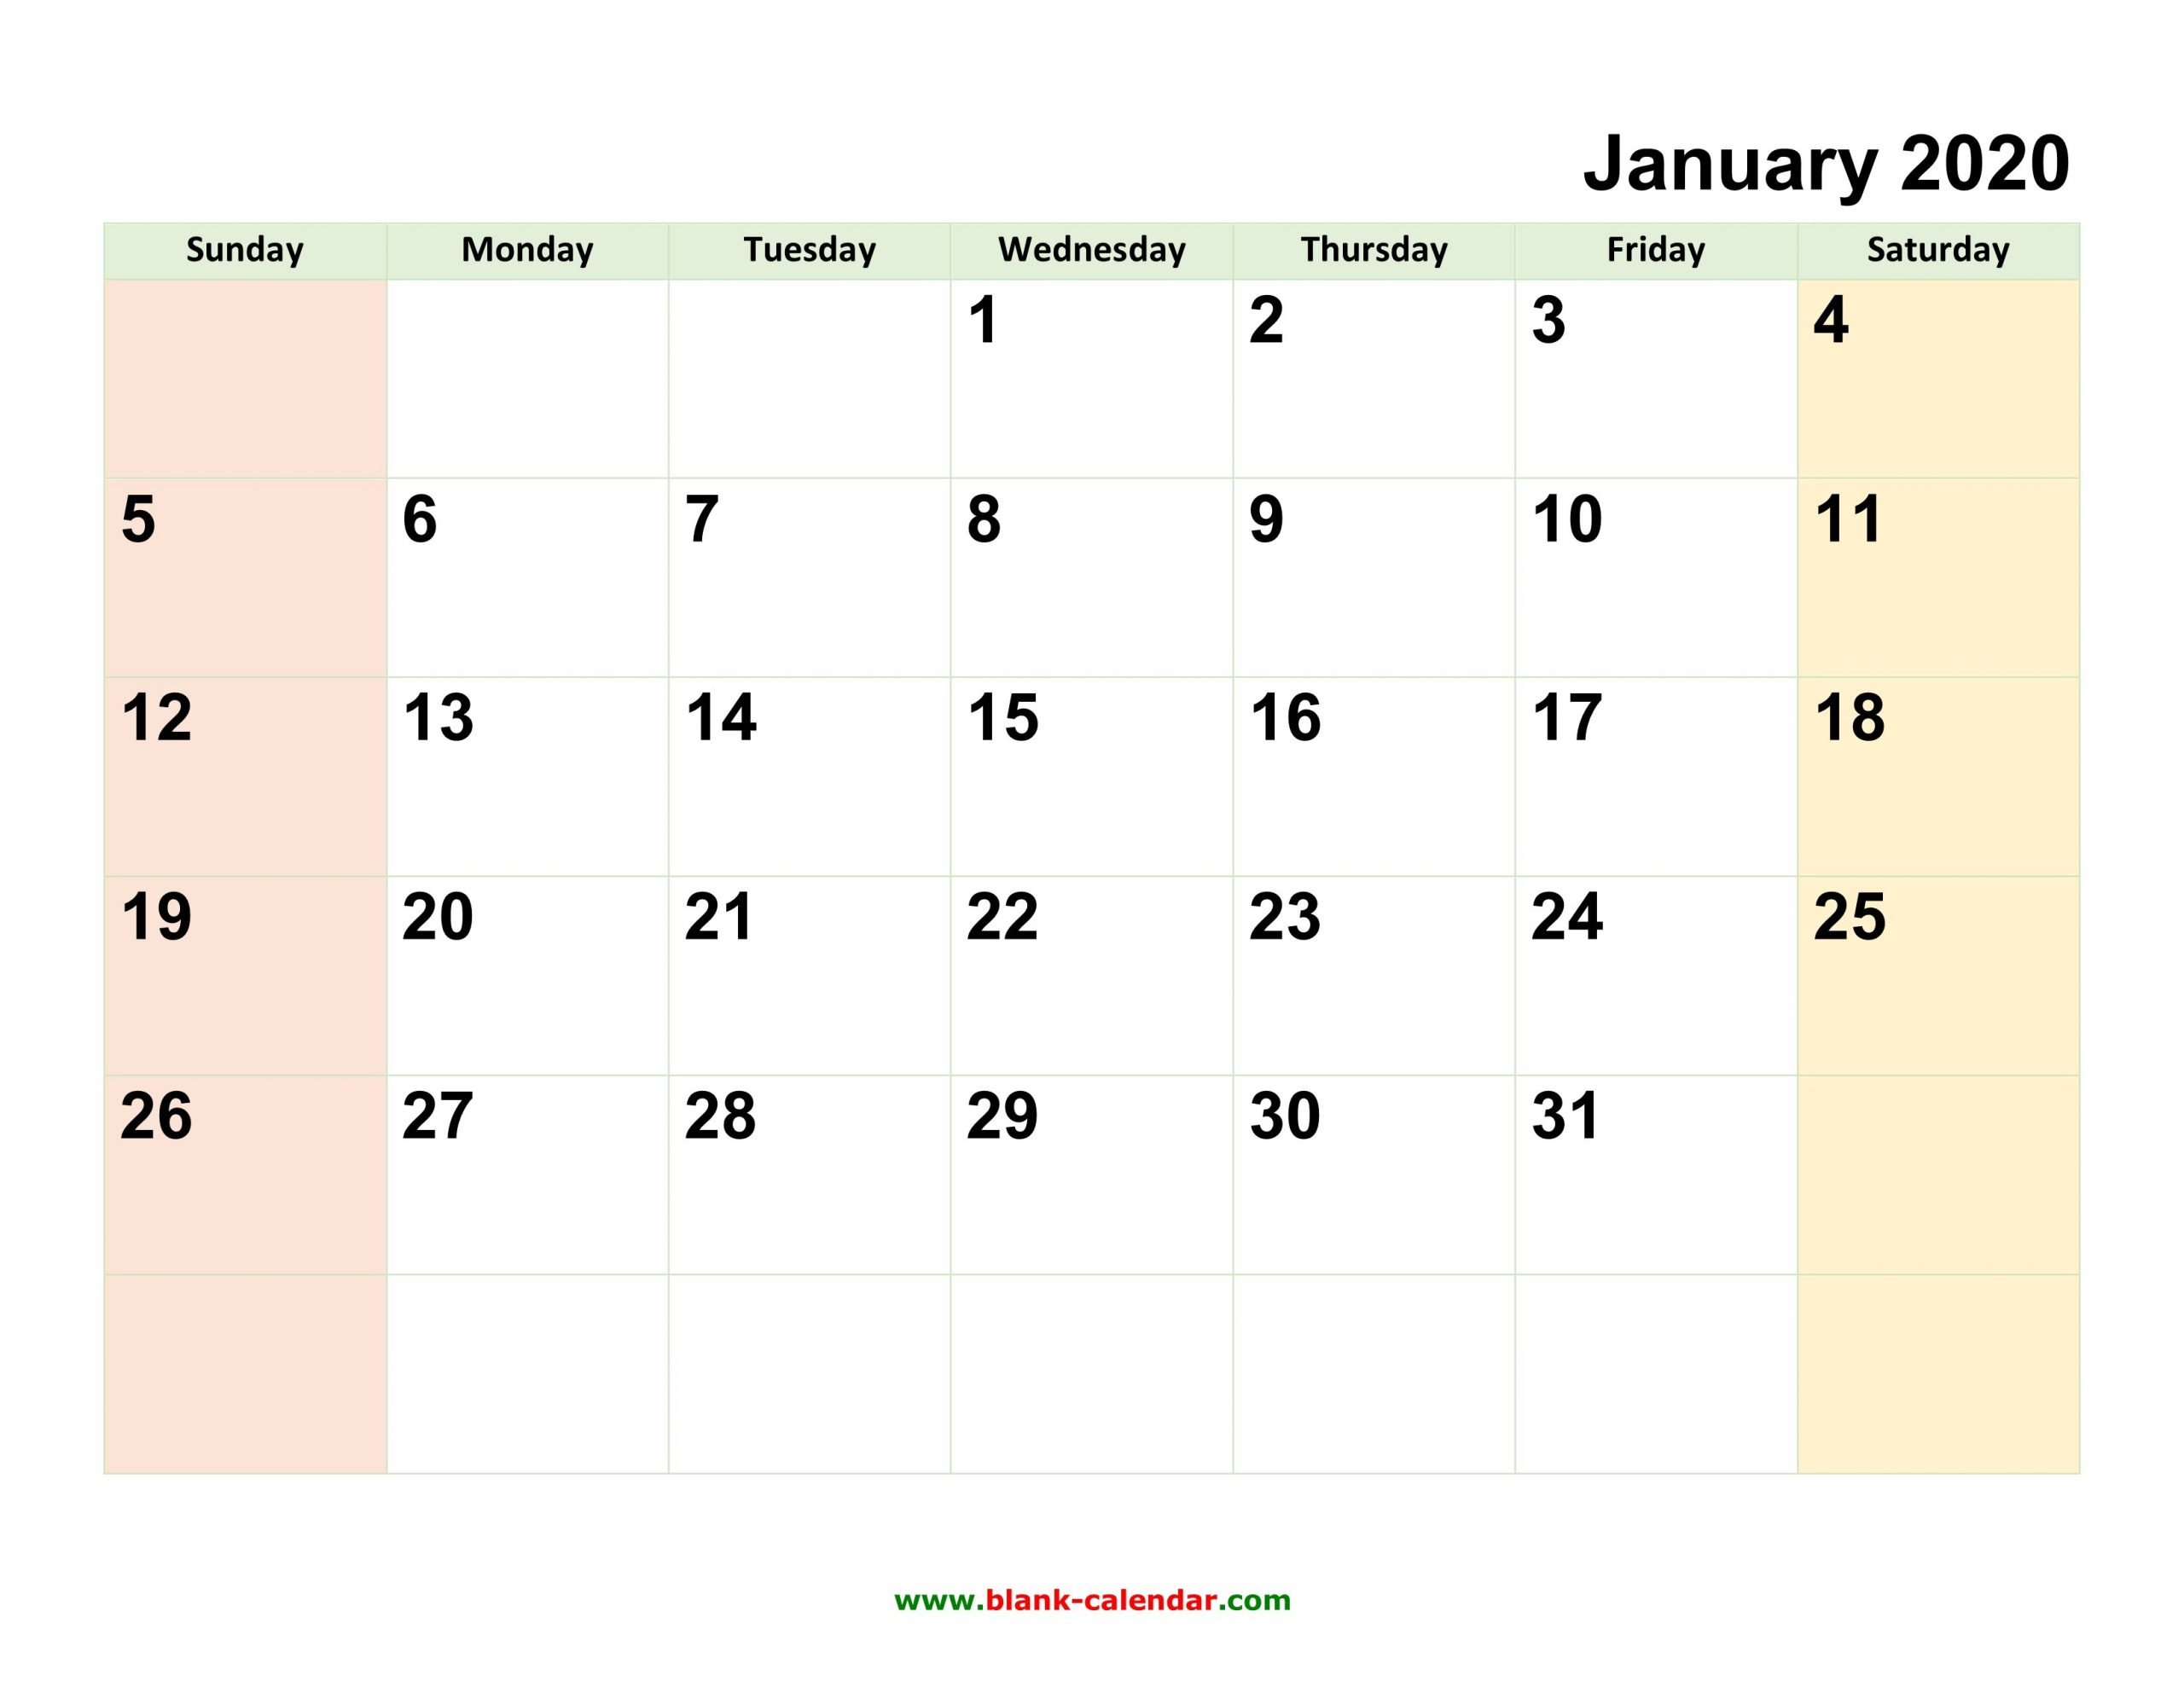 Monthly Calendar 2020 | Free Download, Editable And Printable 12 Month Calendar Editable Templates